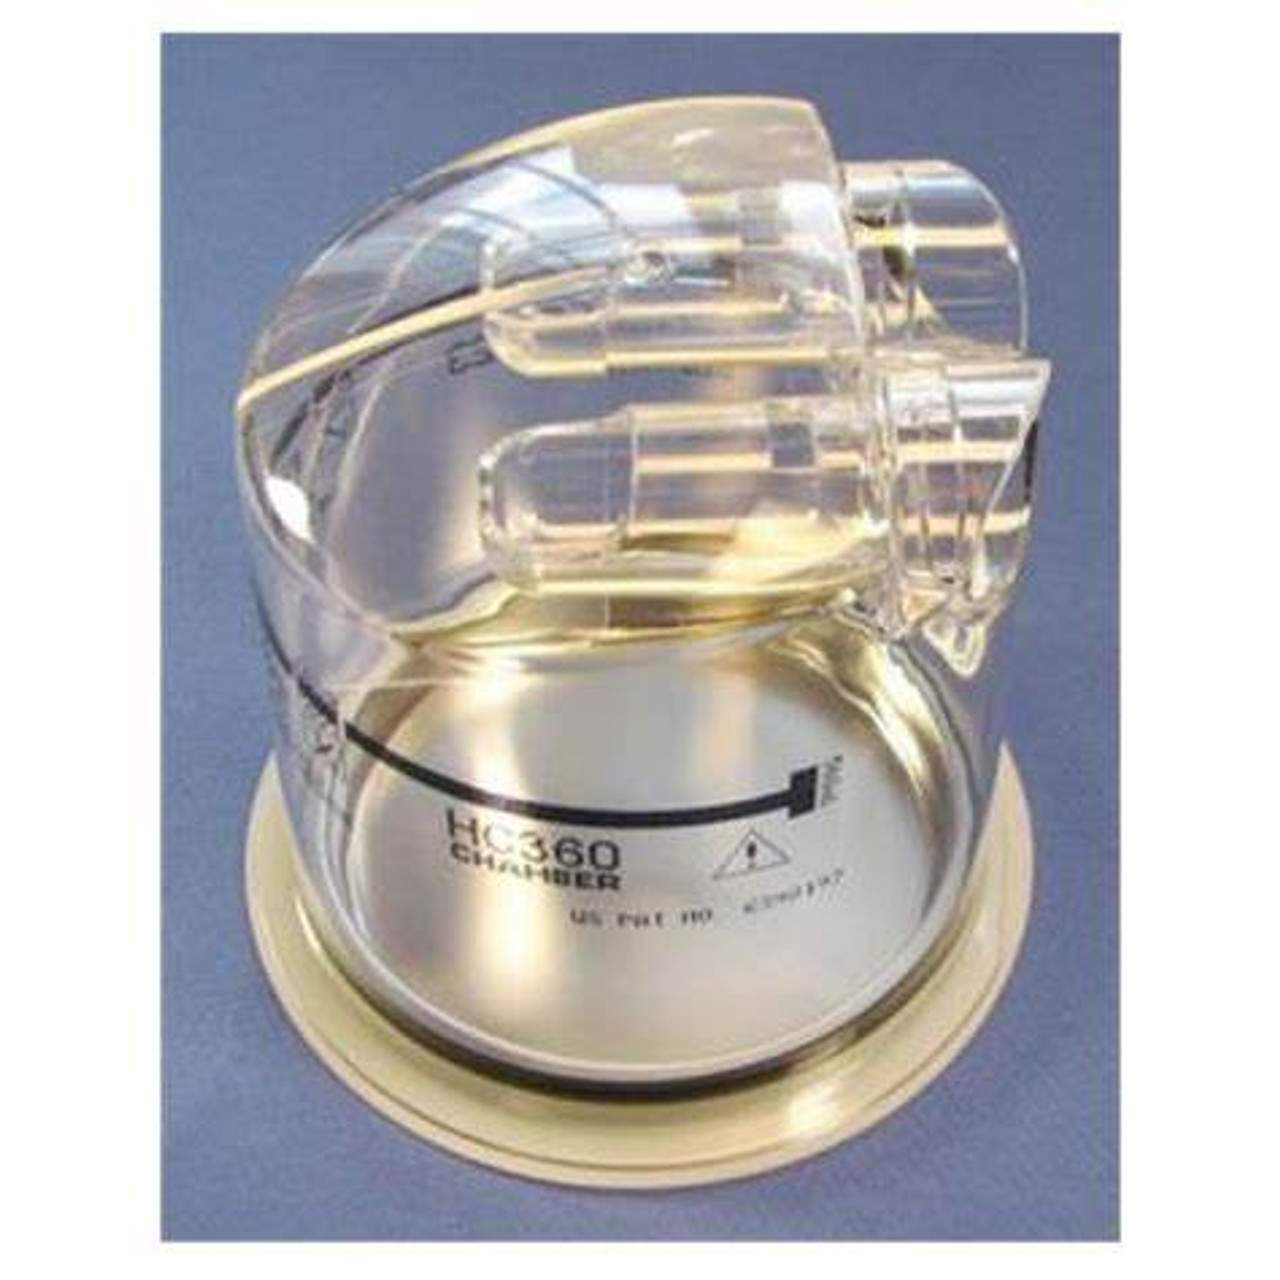 Extended Life Stainless Steel Chamber for HC604/HC608 fisher and Paykel CPAP